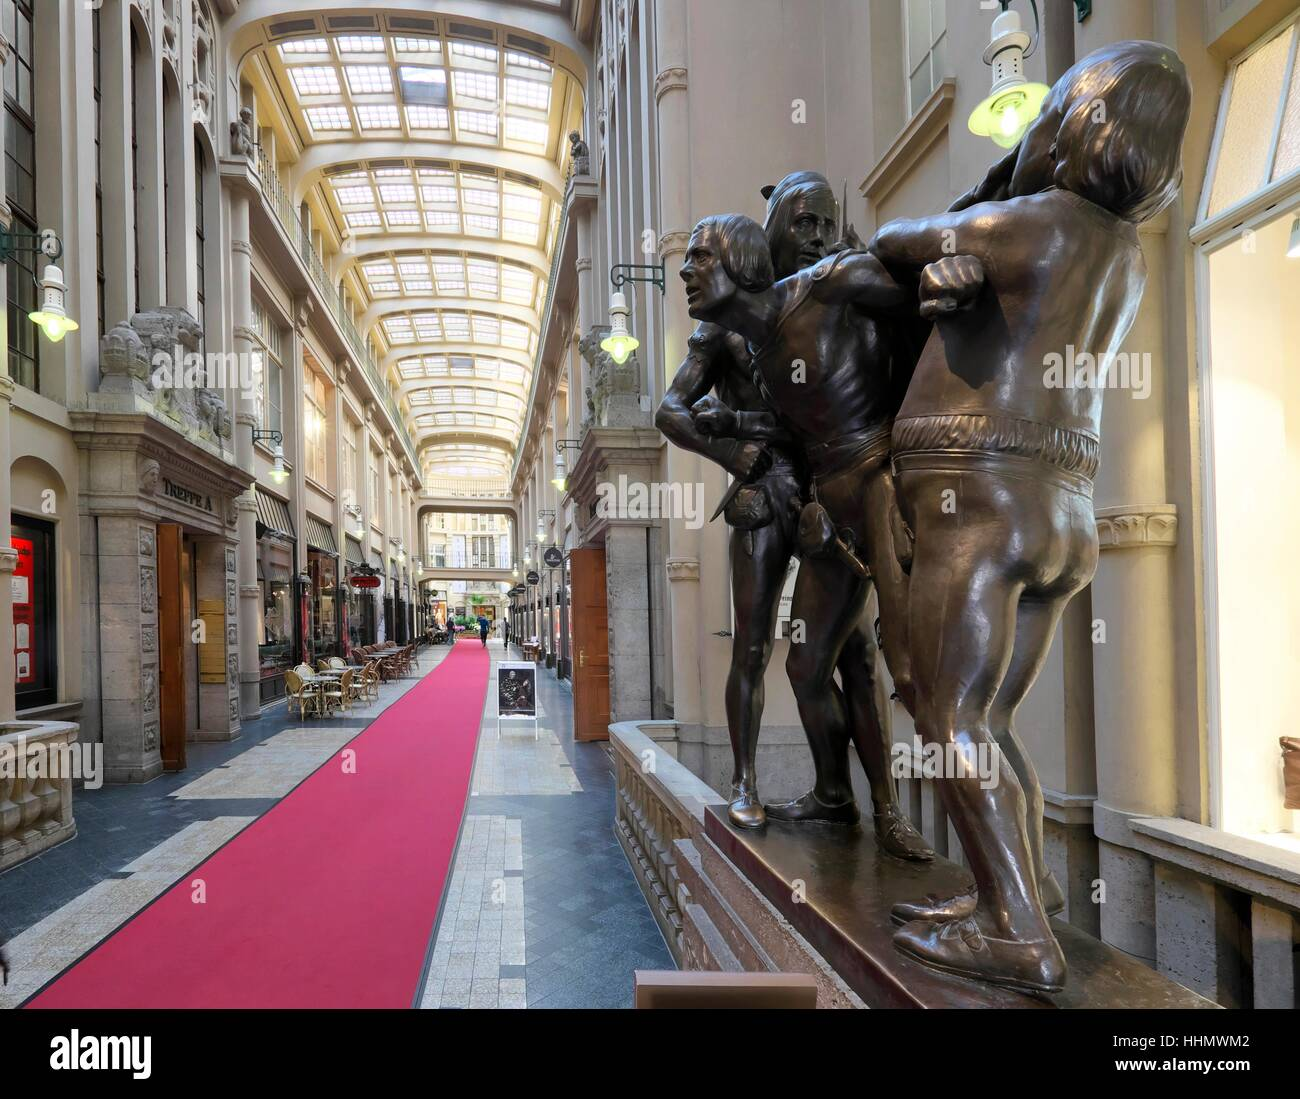 Figure group, scene of Auerbachs Keller from Goethe's Faust, Mädlerpassage, Leipzig, Saxony, Germany - Stock Image